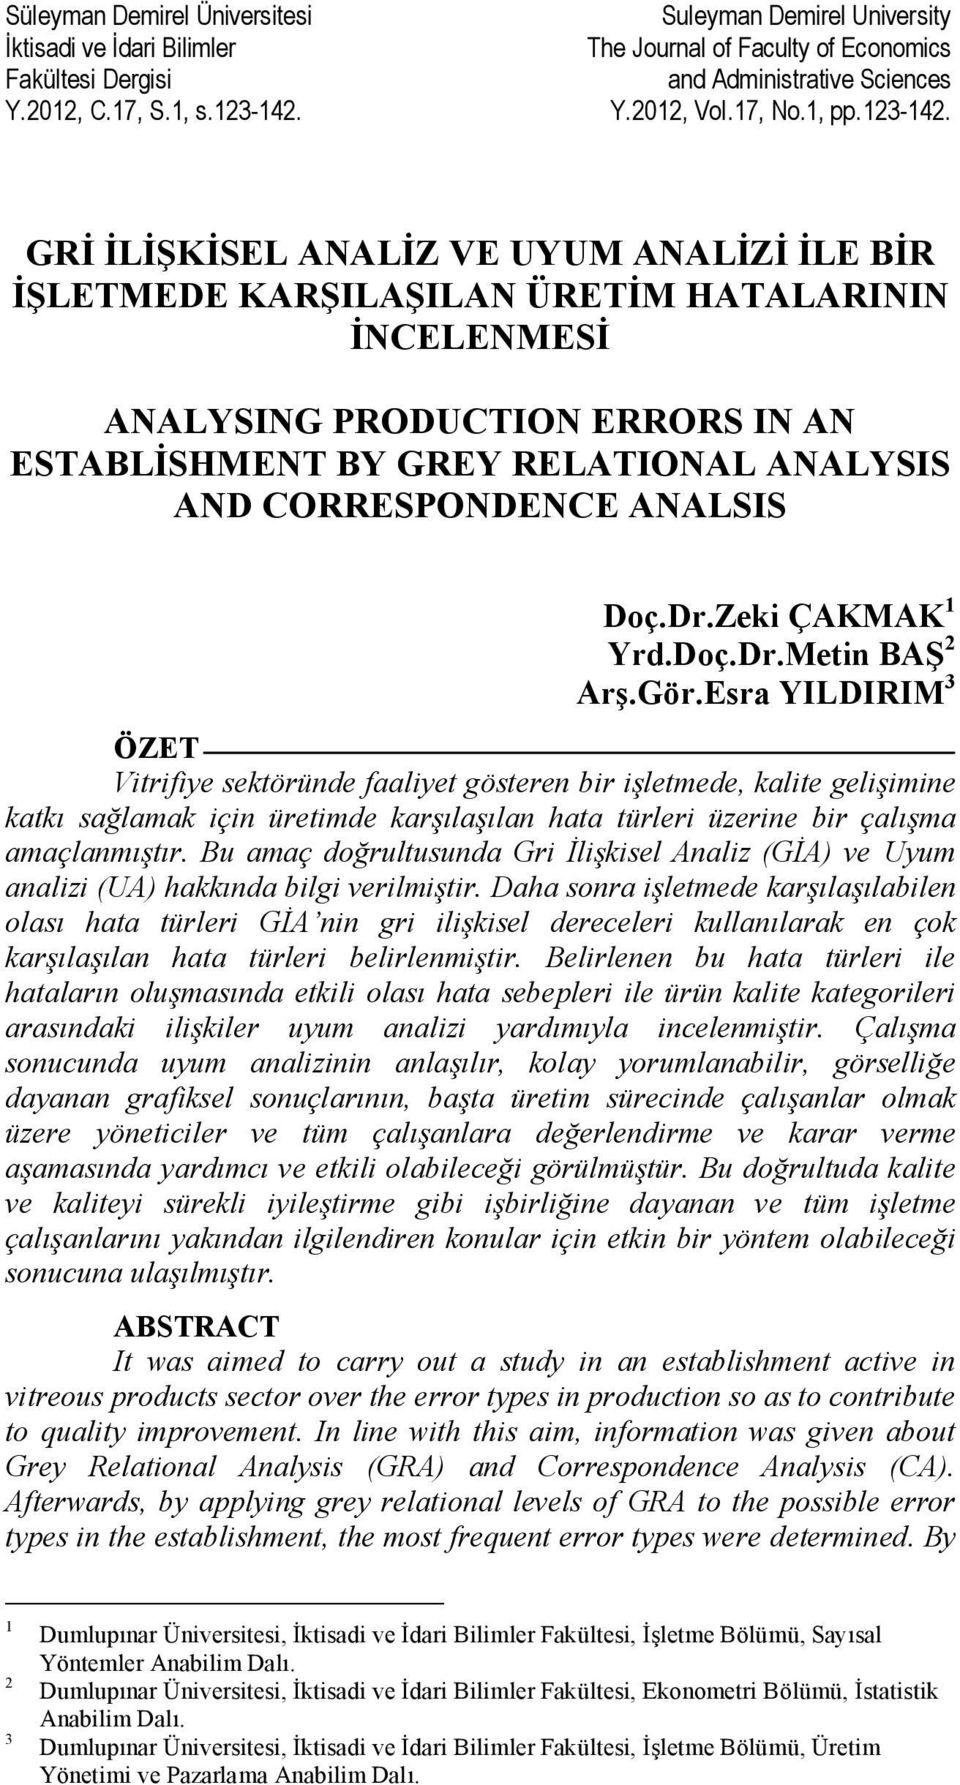 GRİ İLİŞKİSEL ANALİZ VE UYUM ANALİZİ İLE BİR İŞLETMEDE KARŞILAŞILAN ÜRETİM HATALARININ İNCELENMESİ ANALYSING PRODUCTION ERRORS IN AN ESTABLİSHMENT BY GREY RELATIONAL ANALYSIS AND CORRESPONDENCE